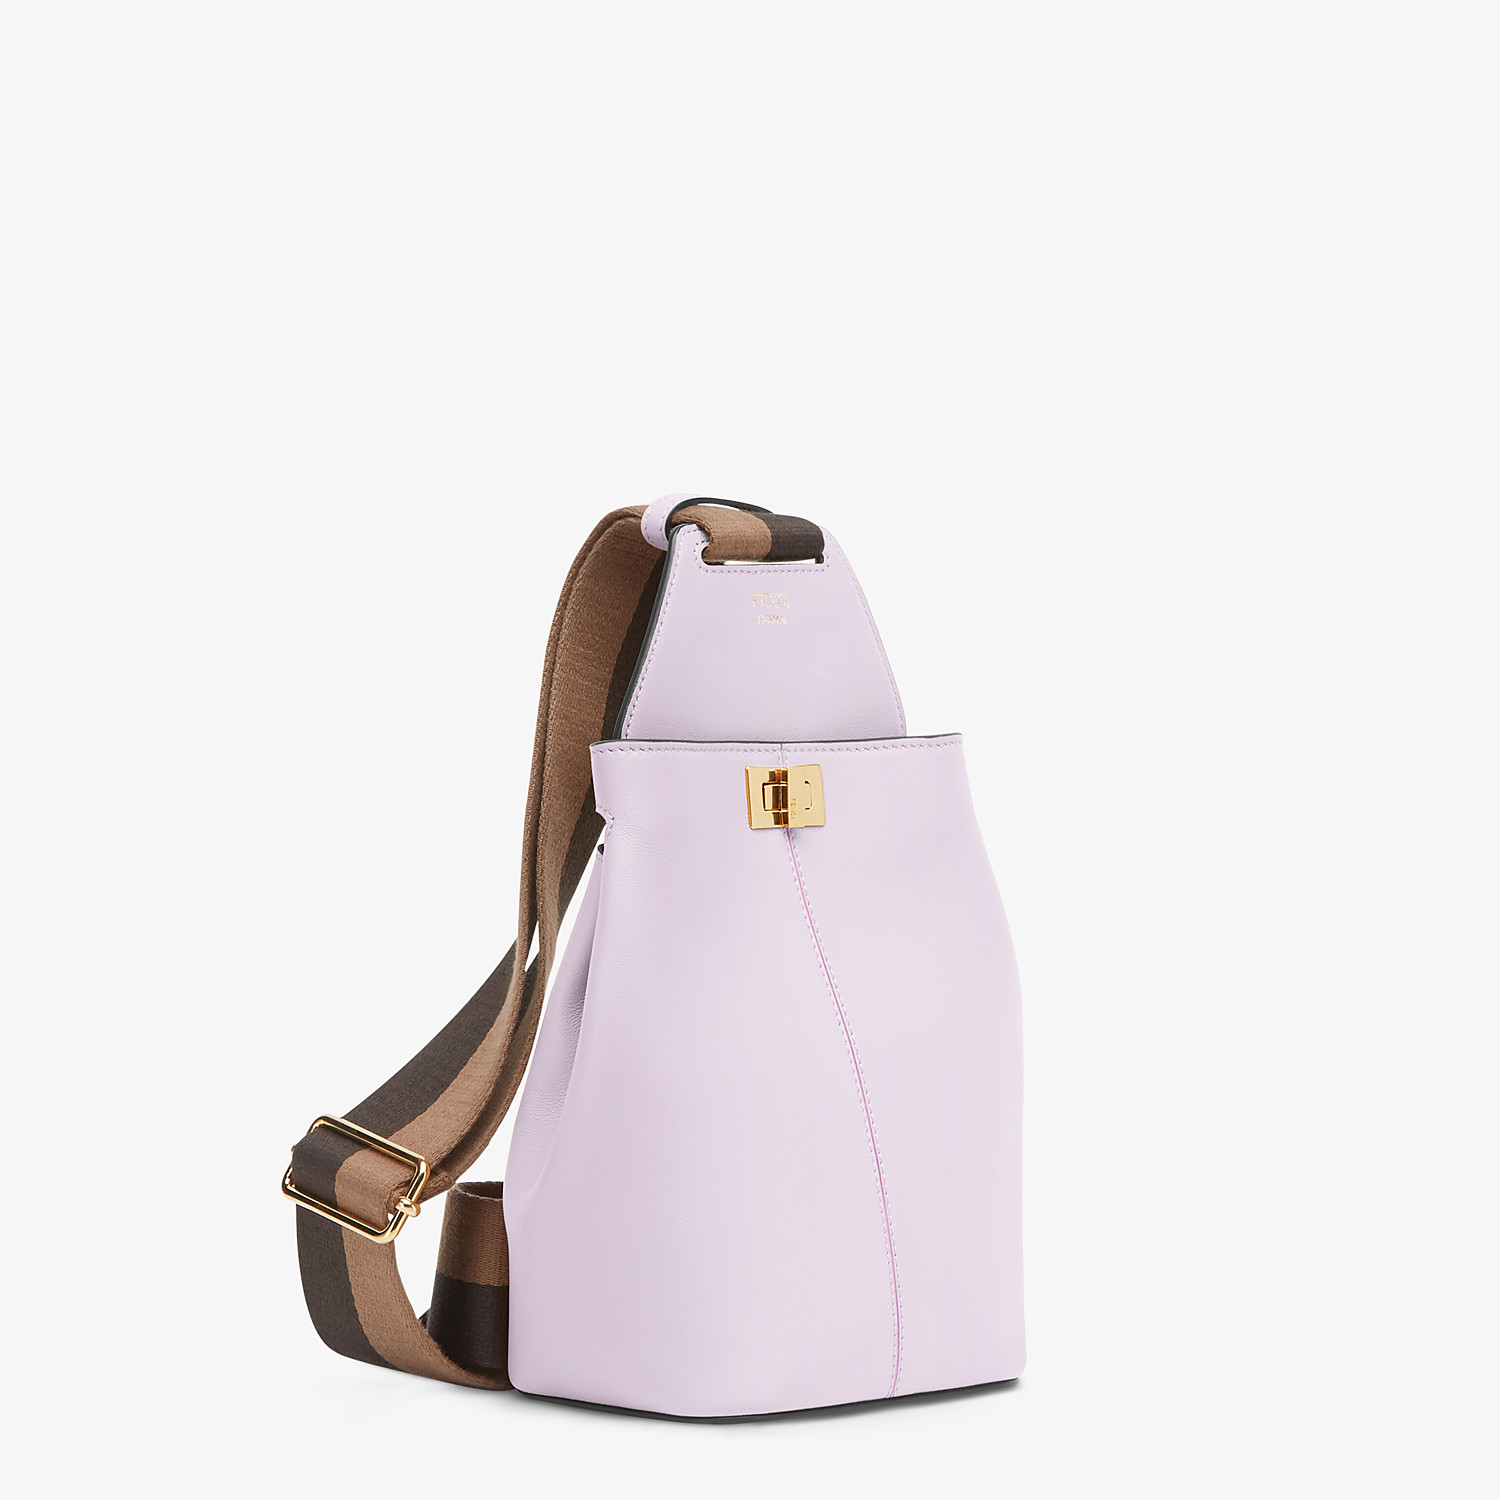 FENDI GUITAR BAG - Lilac leather mini-bag - view 2 detail